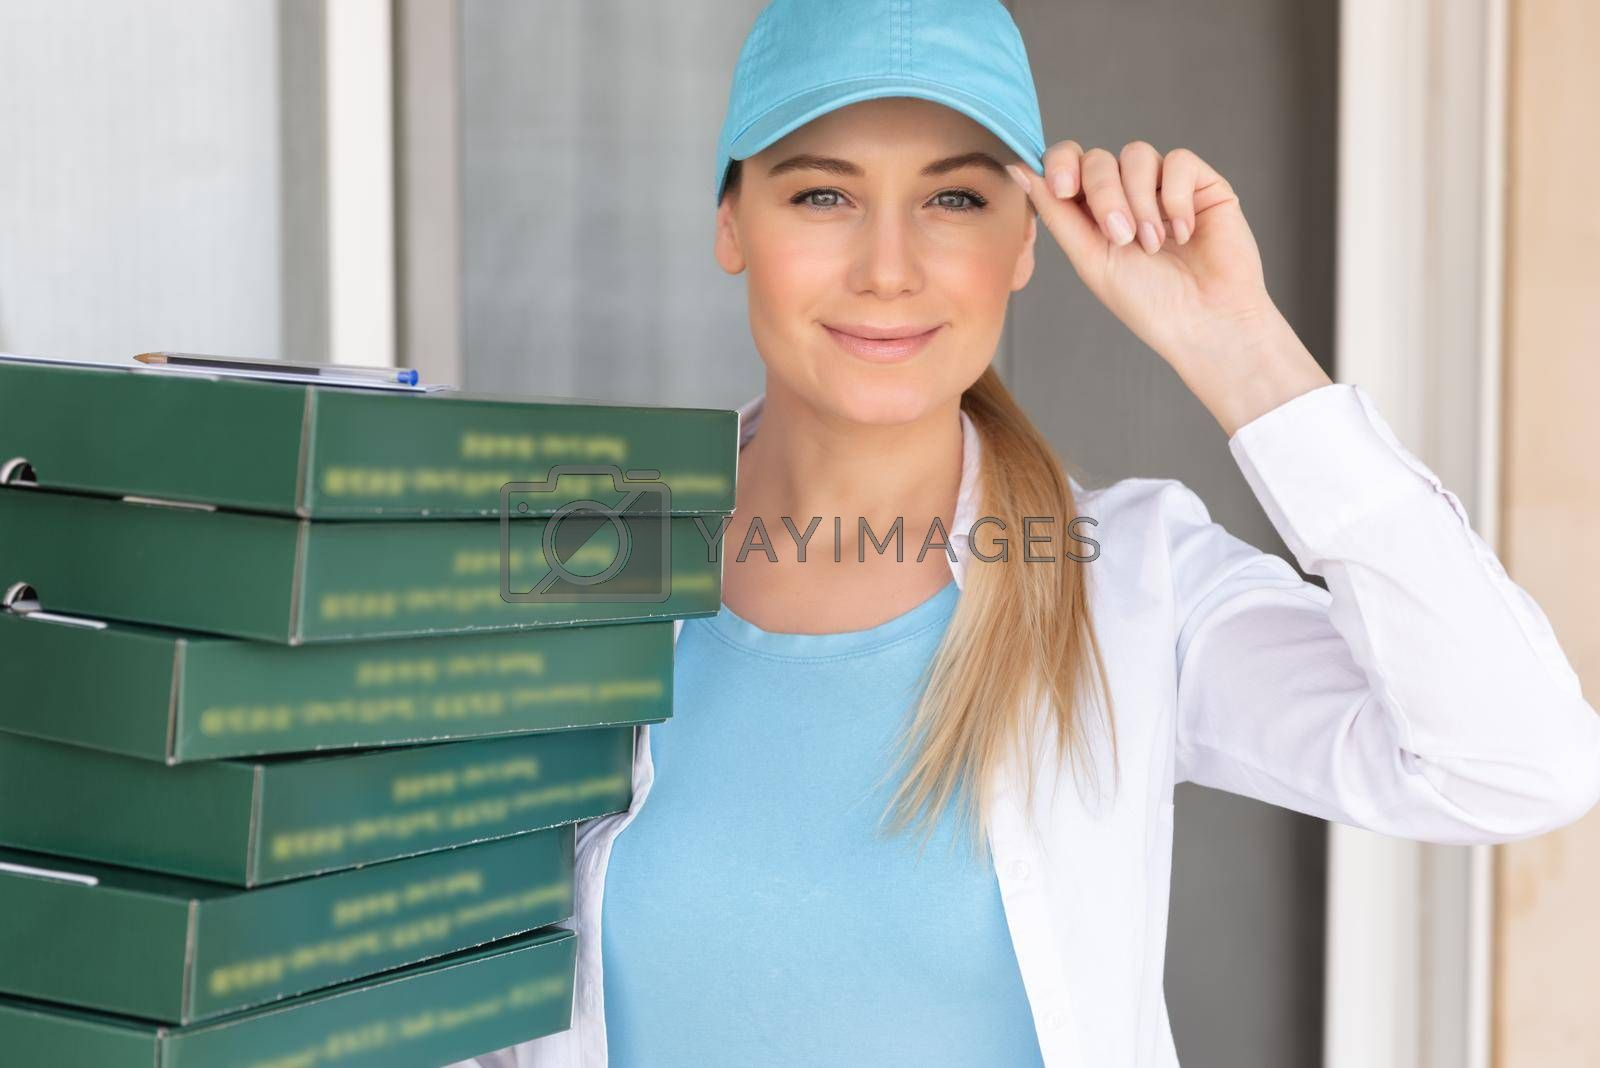 Portrait of a Nice Delivery Girl with Many Boxes. Service Occupation. Online Delivery. Food Delivery. Modern Way of Business.